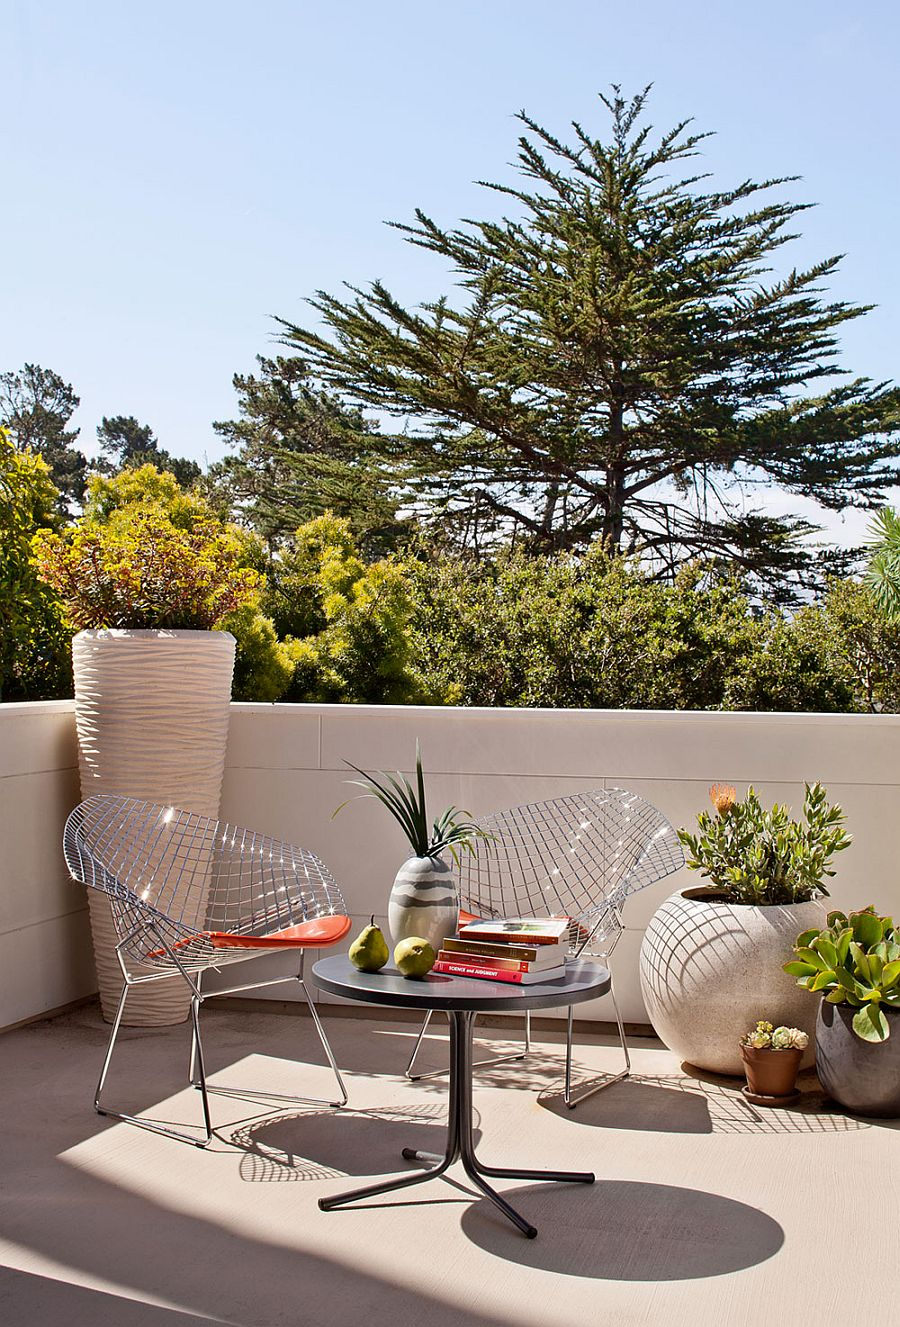 Decorating idea for the small outdoor deck